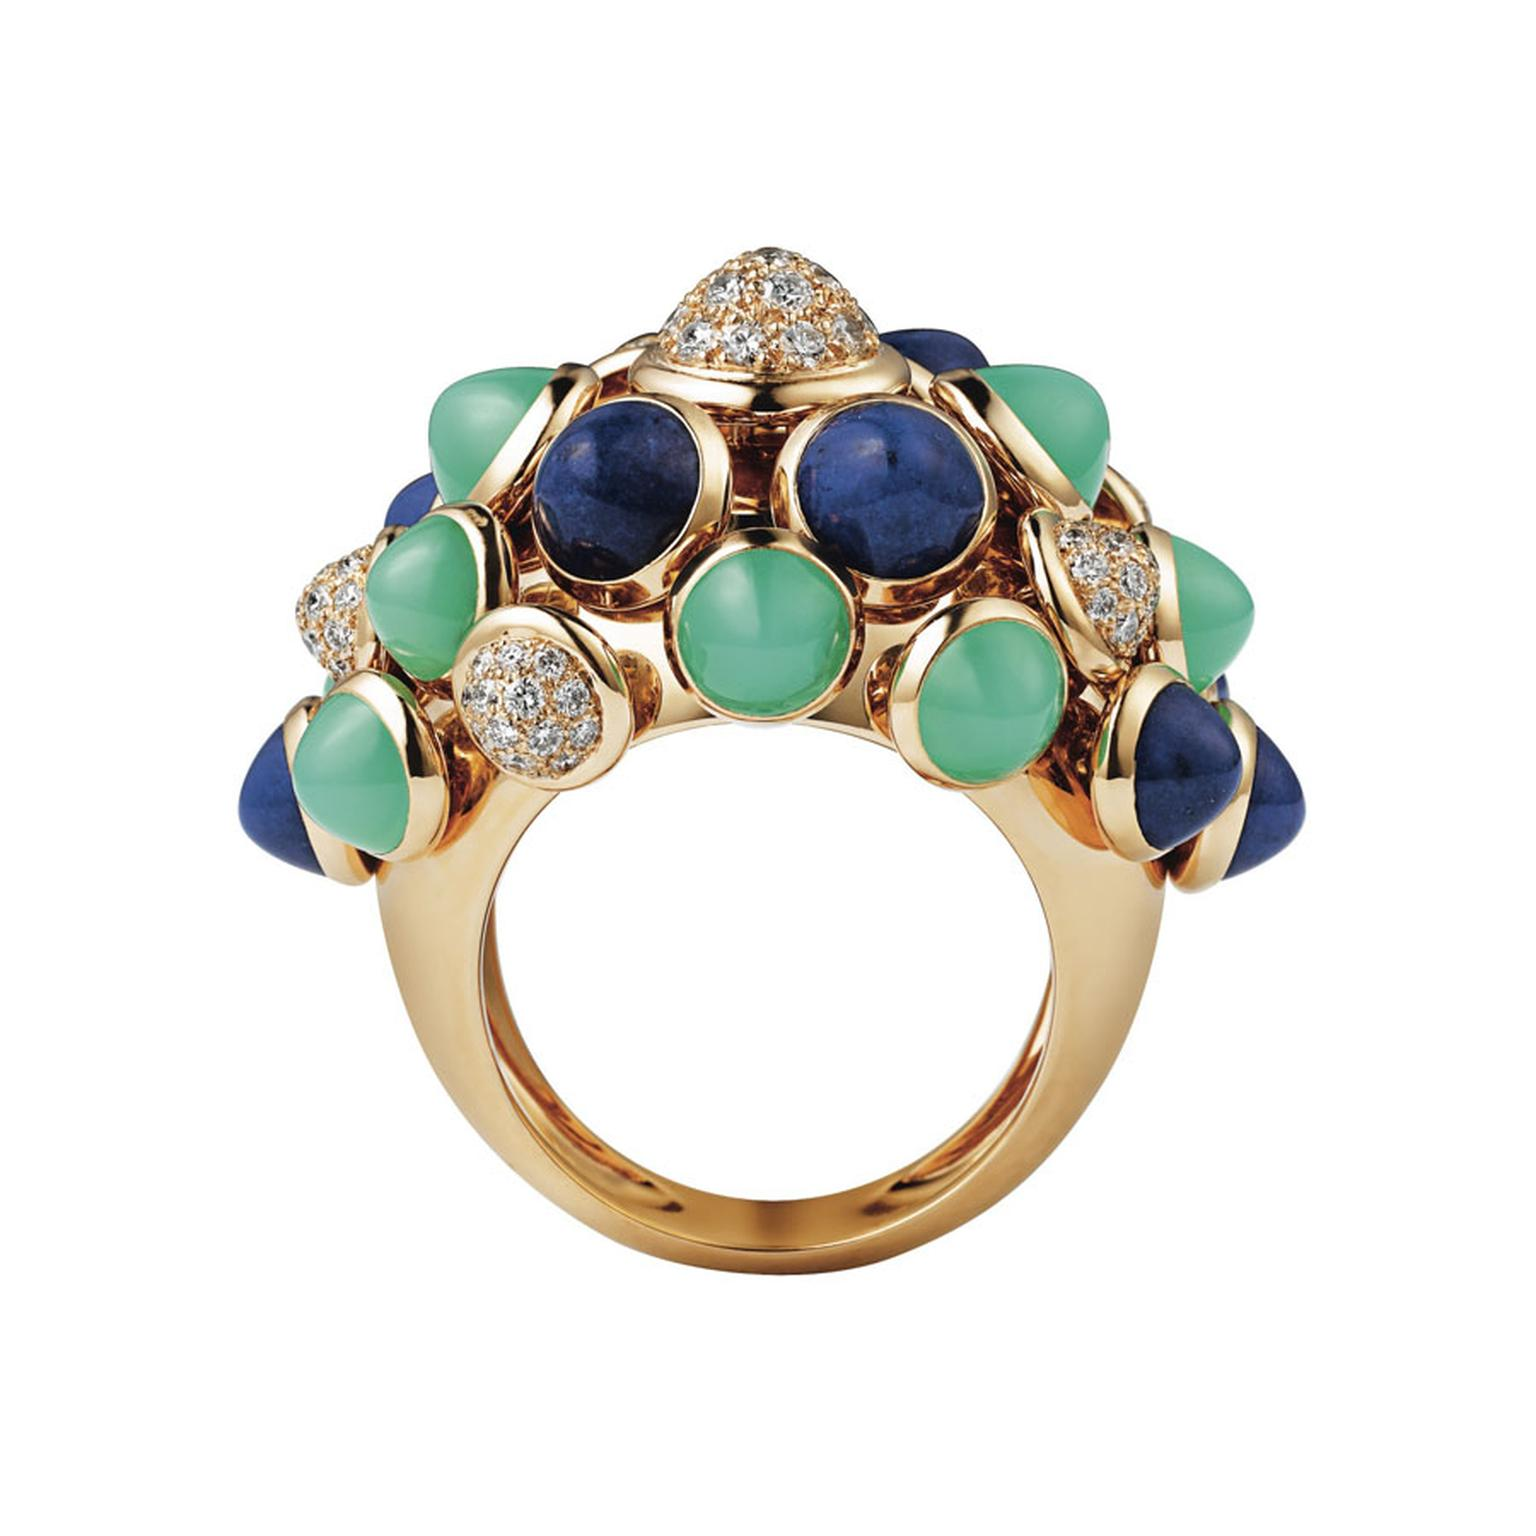 Cartier Paris Nouvelle Vague 'Mischievous' ring in yellow gold, set with lapis lazuli, chrysoprase and diamonds.